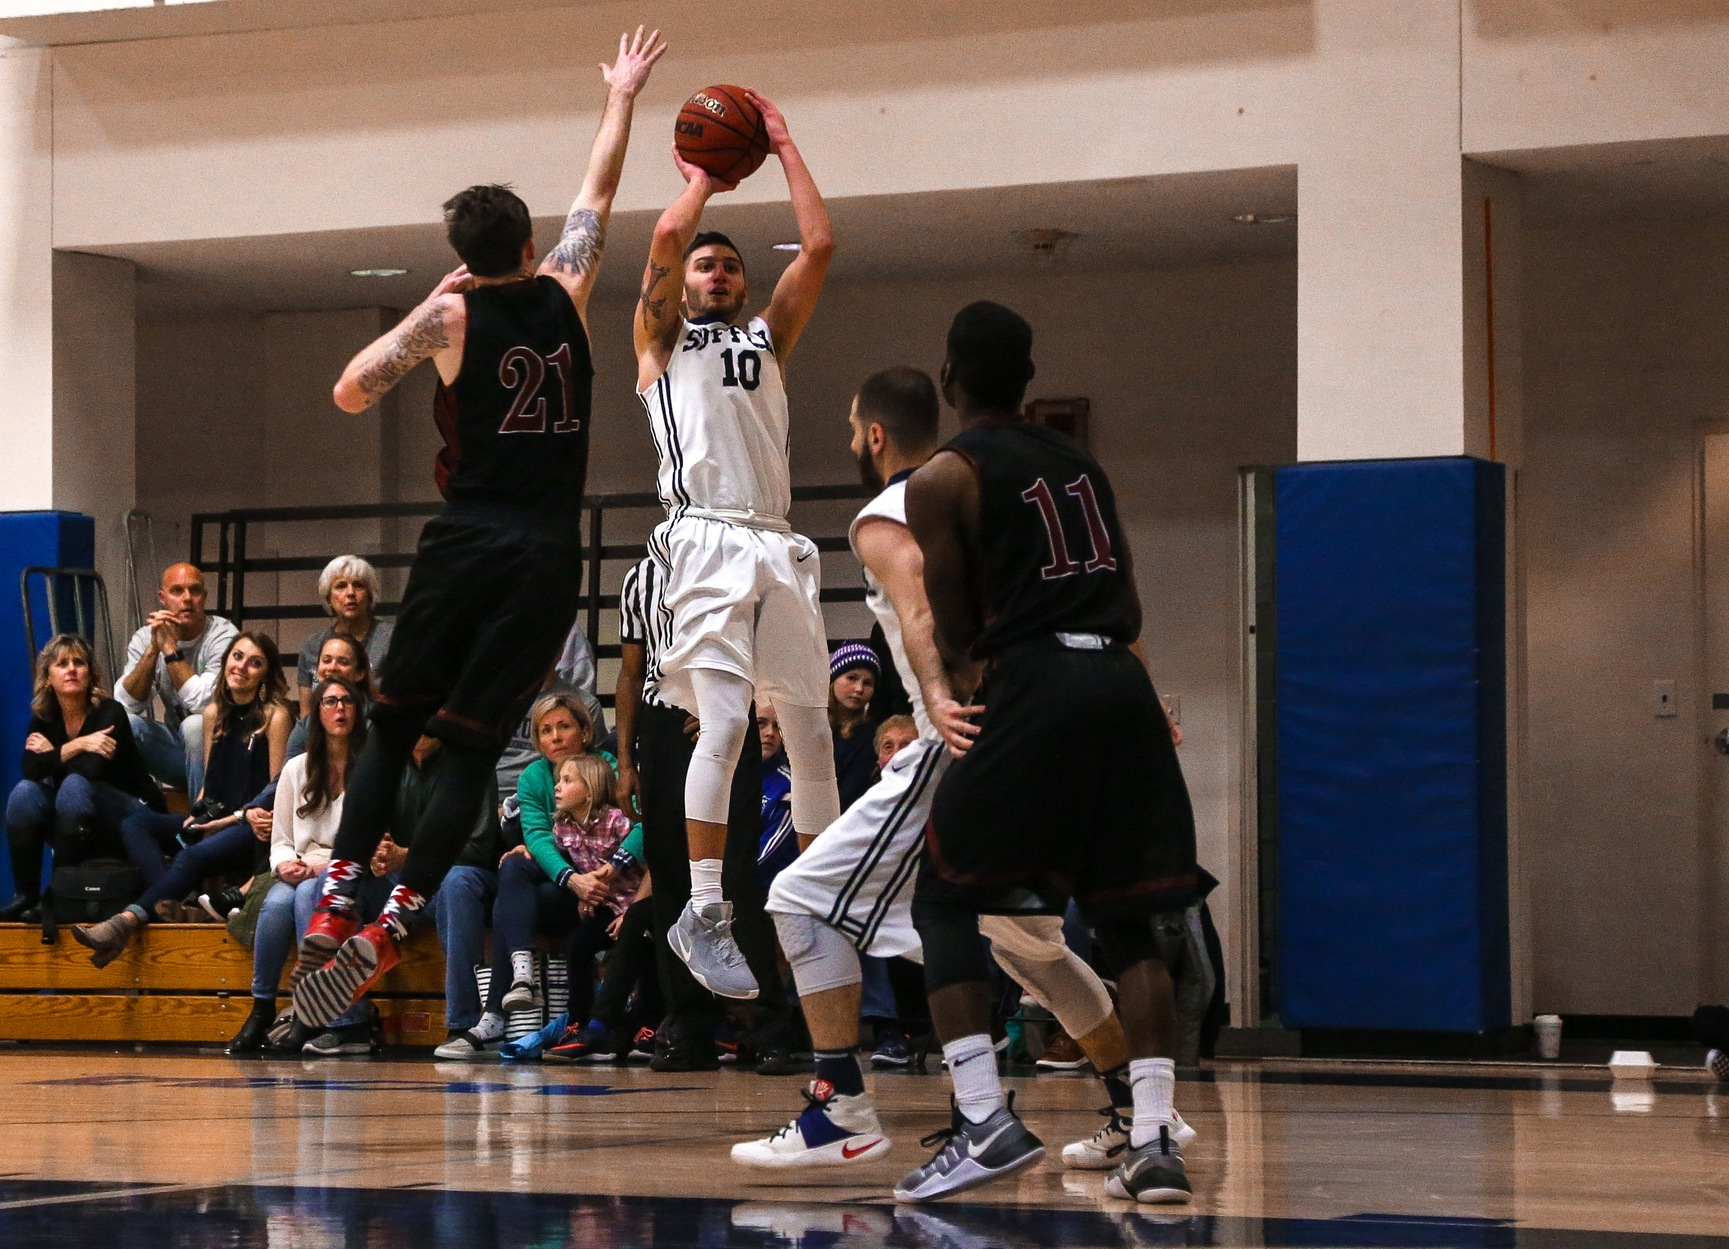 Men's Basketball Soars Past Rivier, 89-62